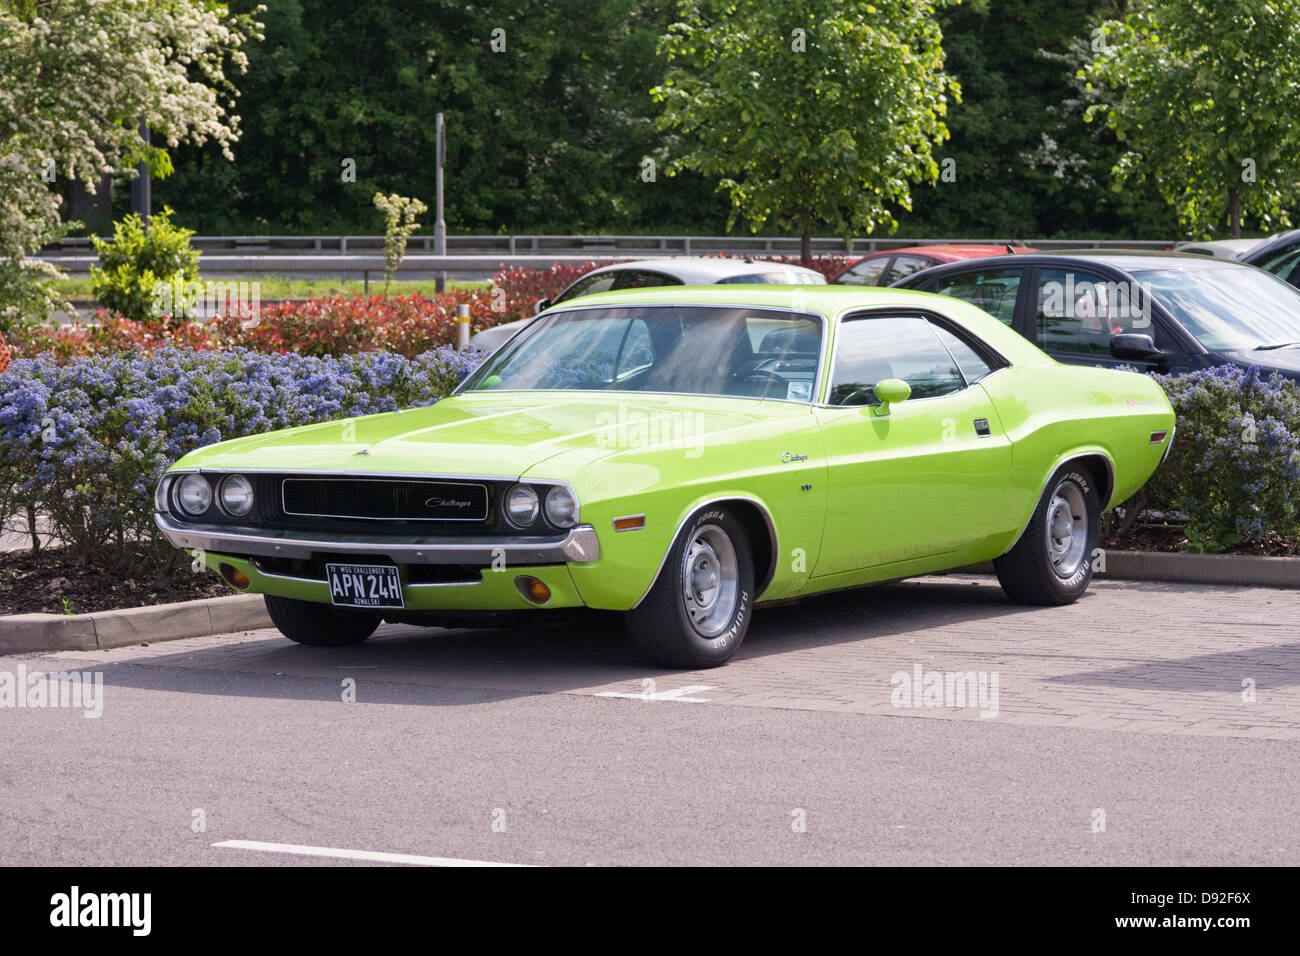 Classic American Car 1970 Dodge Challenger Stock Photo 57218866 Alamy